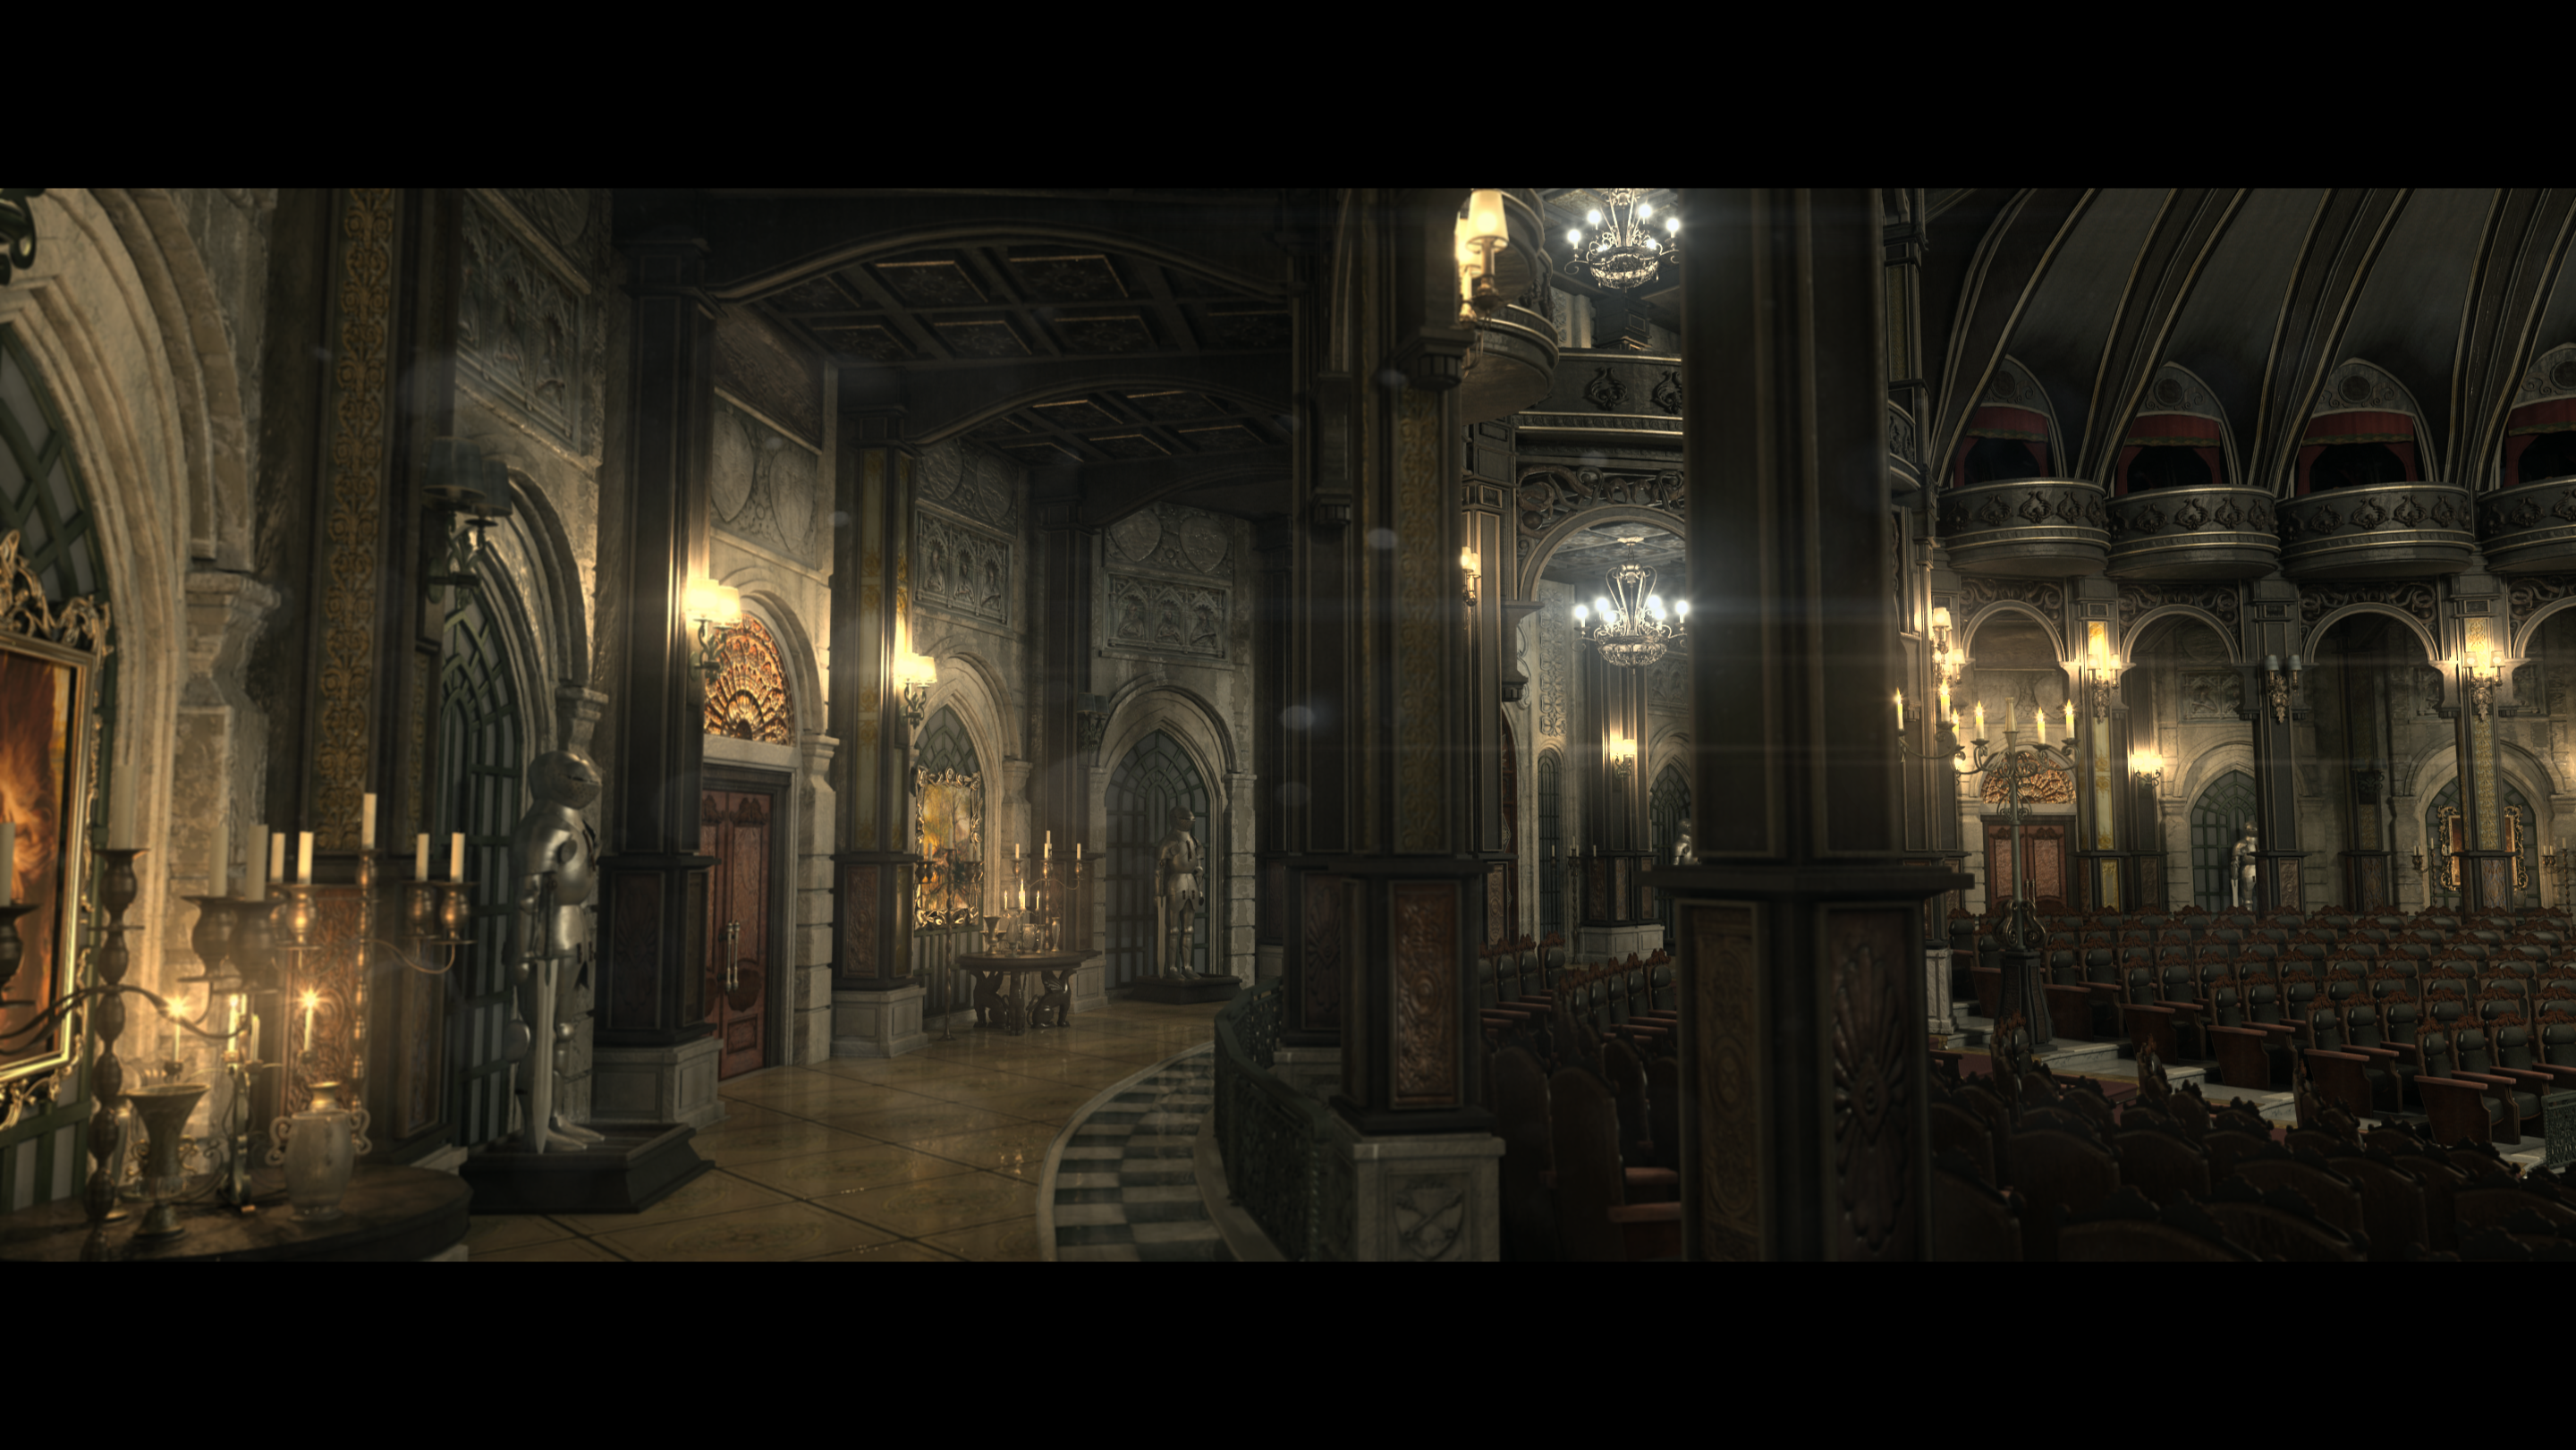 the_opera_scene_inside_by_bowu-d8h661x.png